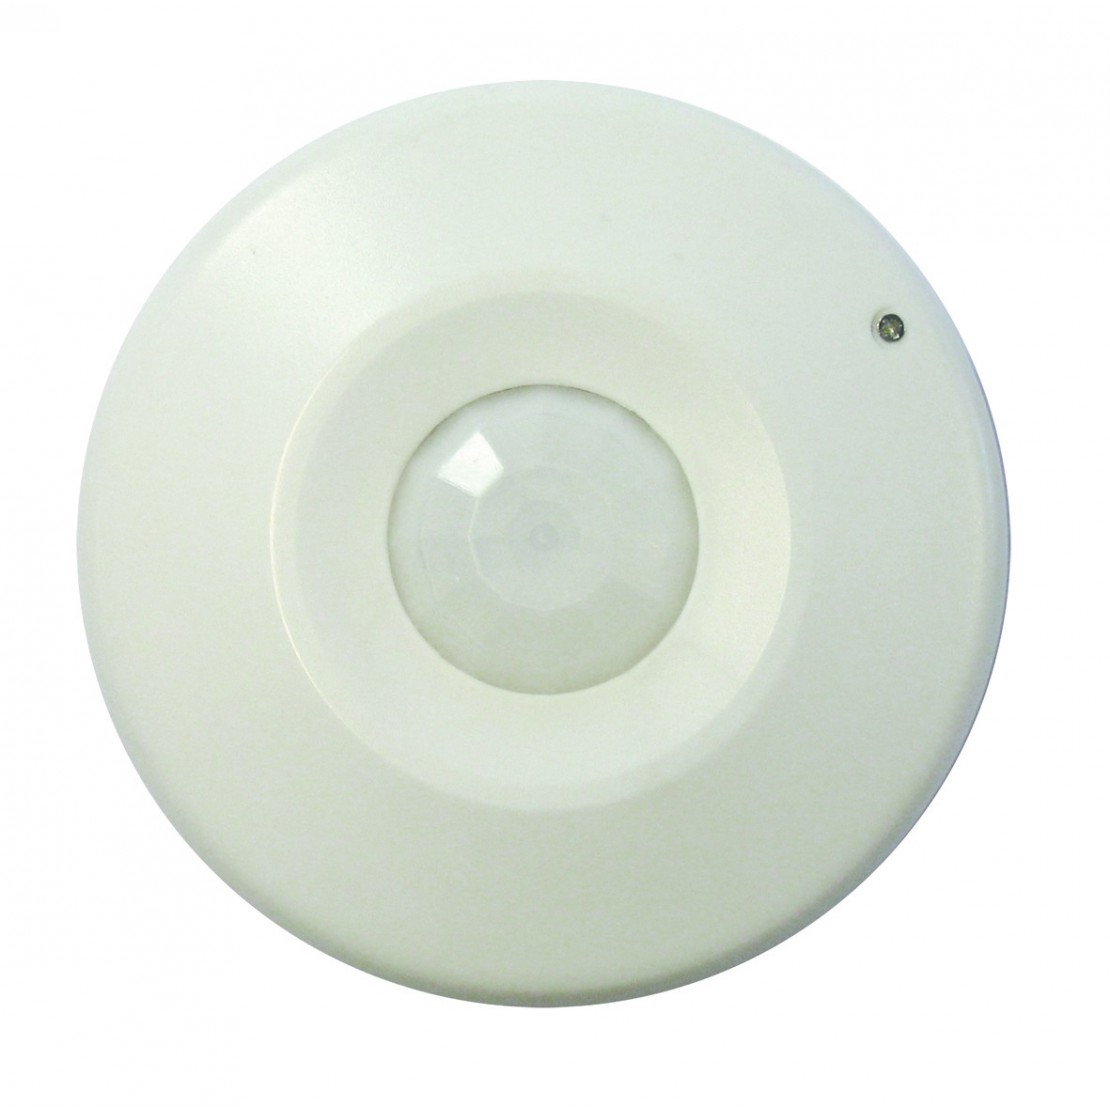 360 Ceiling Mounted Motion Sensor